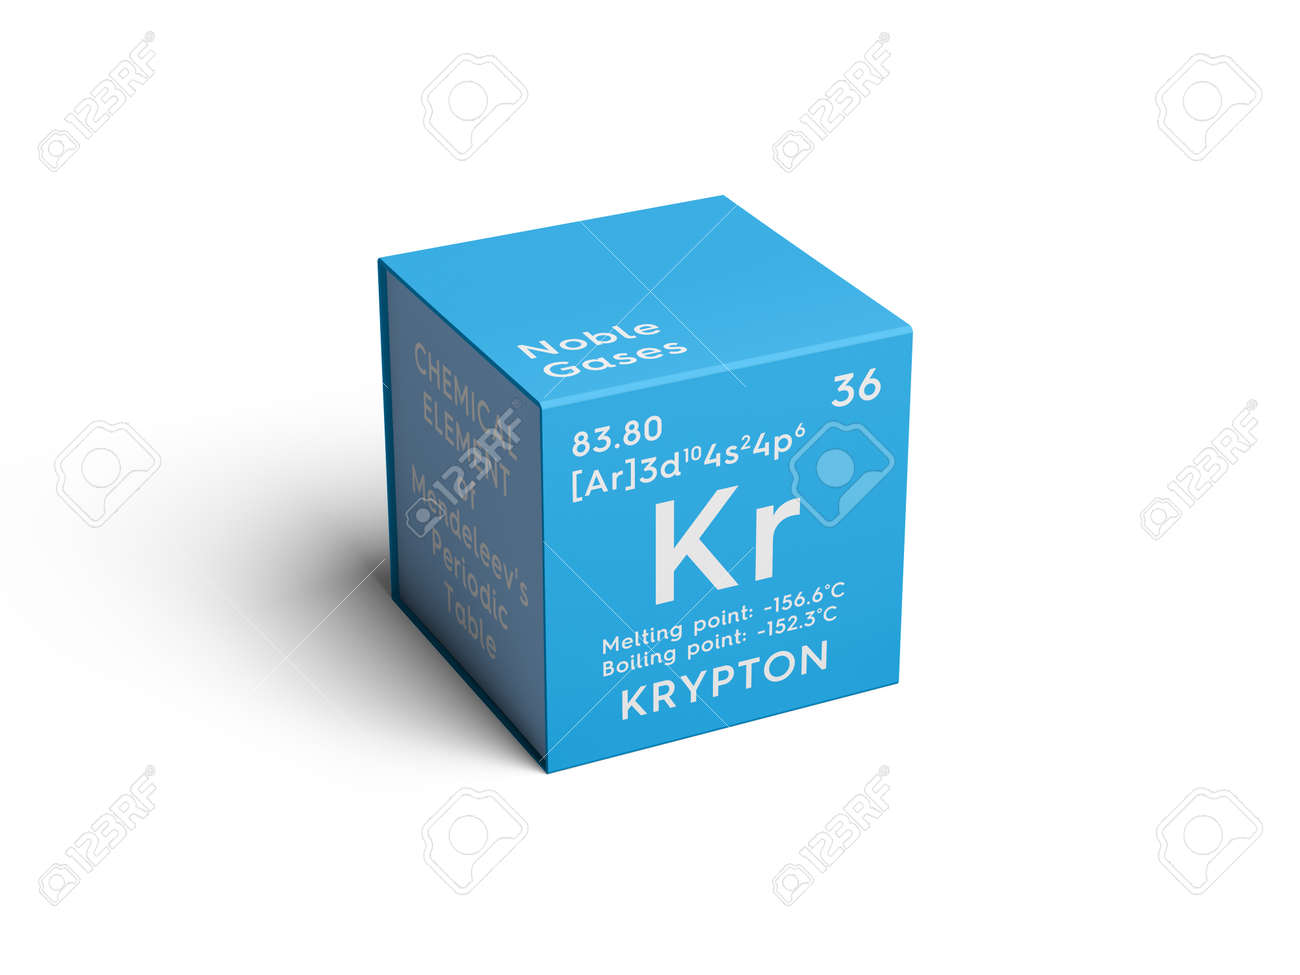 Krypton noble gases chemical element of mendeleevs periodic krypton noble gases chemical element of mendeleevs periodic table krypton in square cube gamestrikefo Choice Image